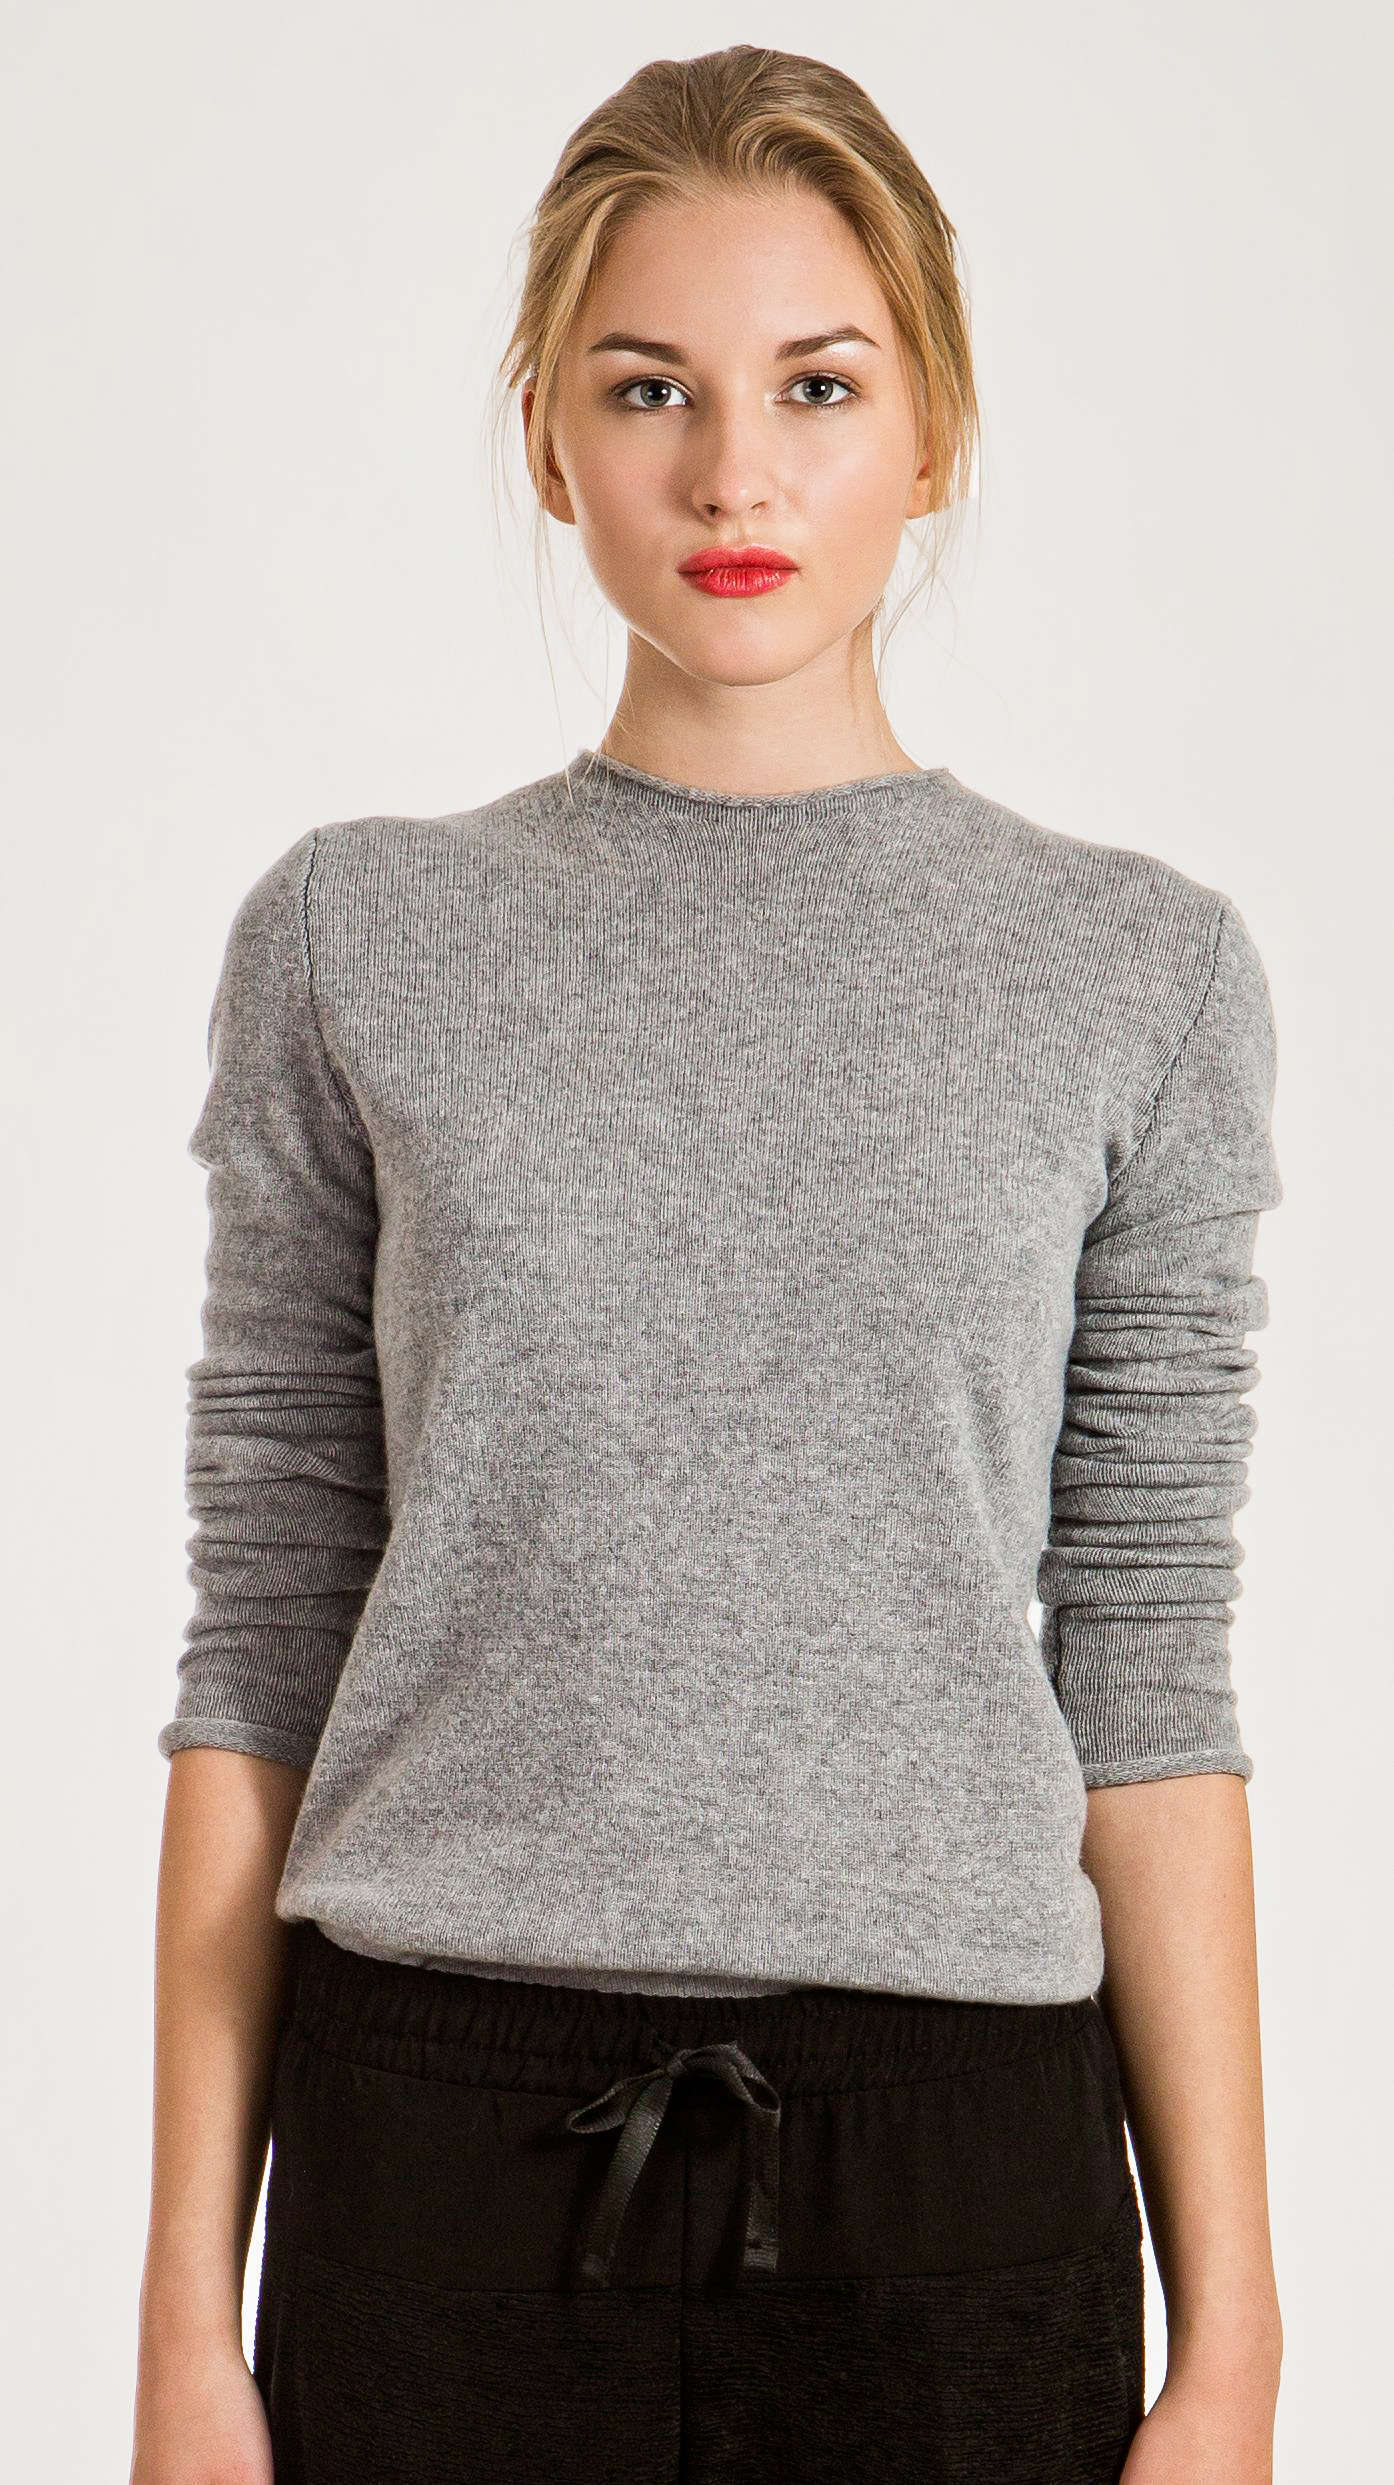 Women's cashmere crewneck sweater KAREN